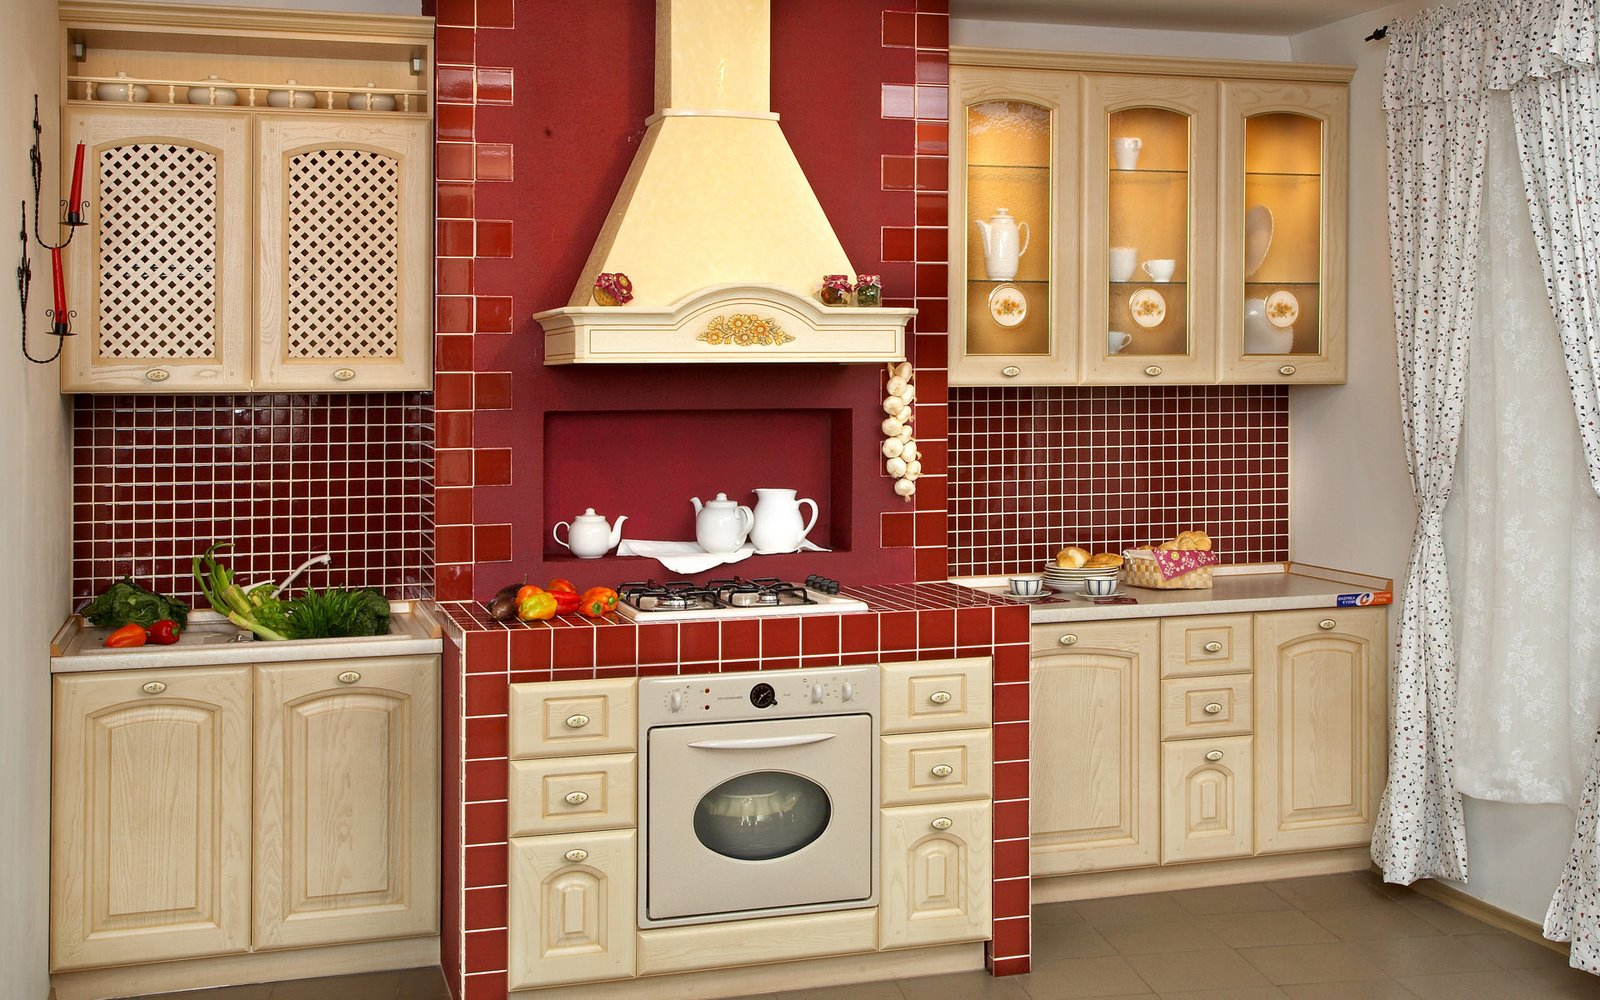 Kitchen CabiDesign